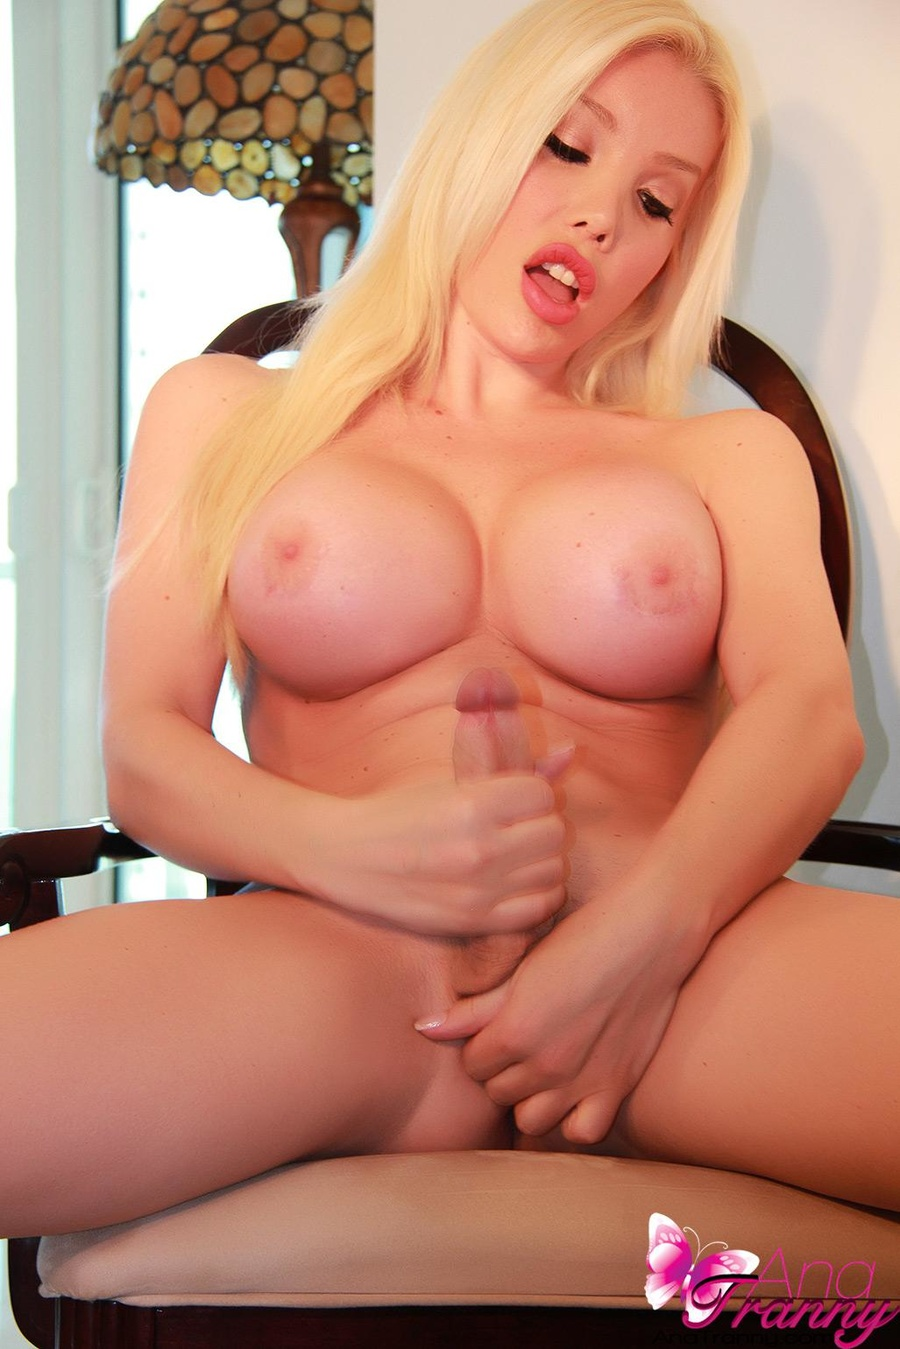 The Hottest shemale big cock and big tit she soooo